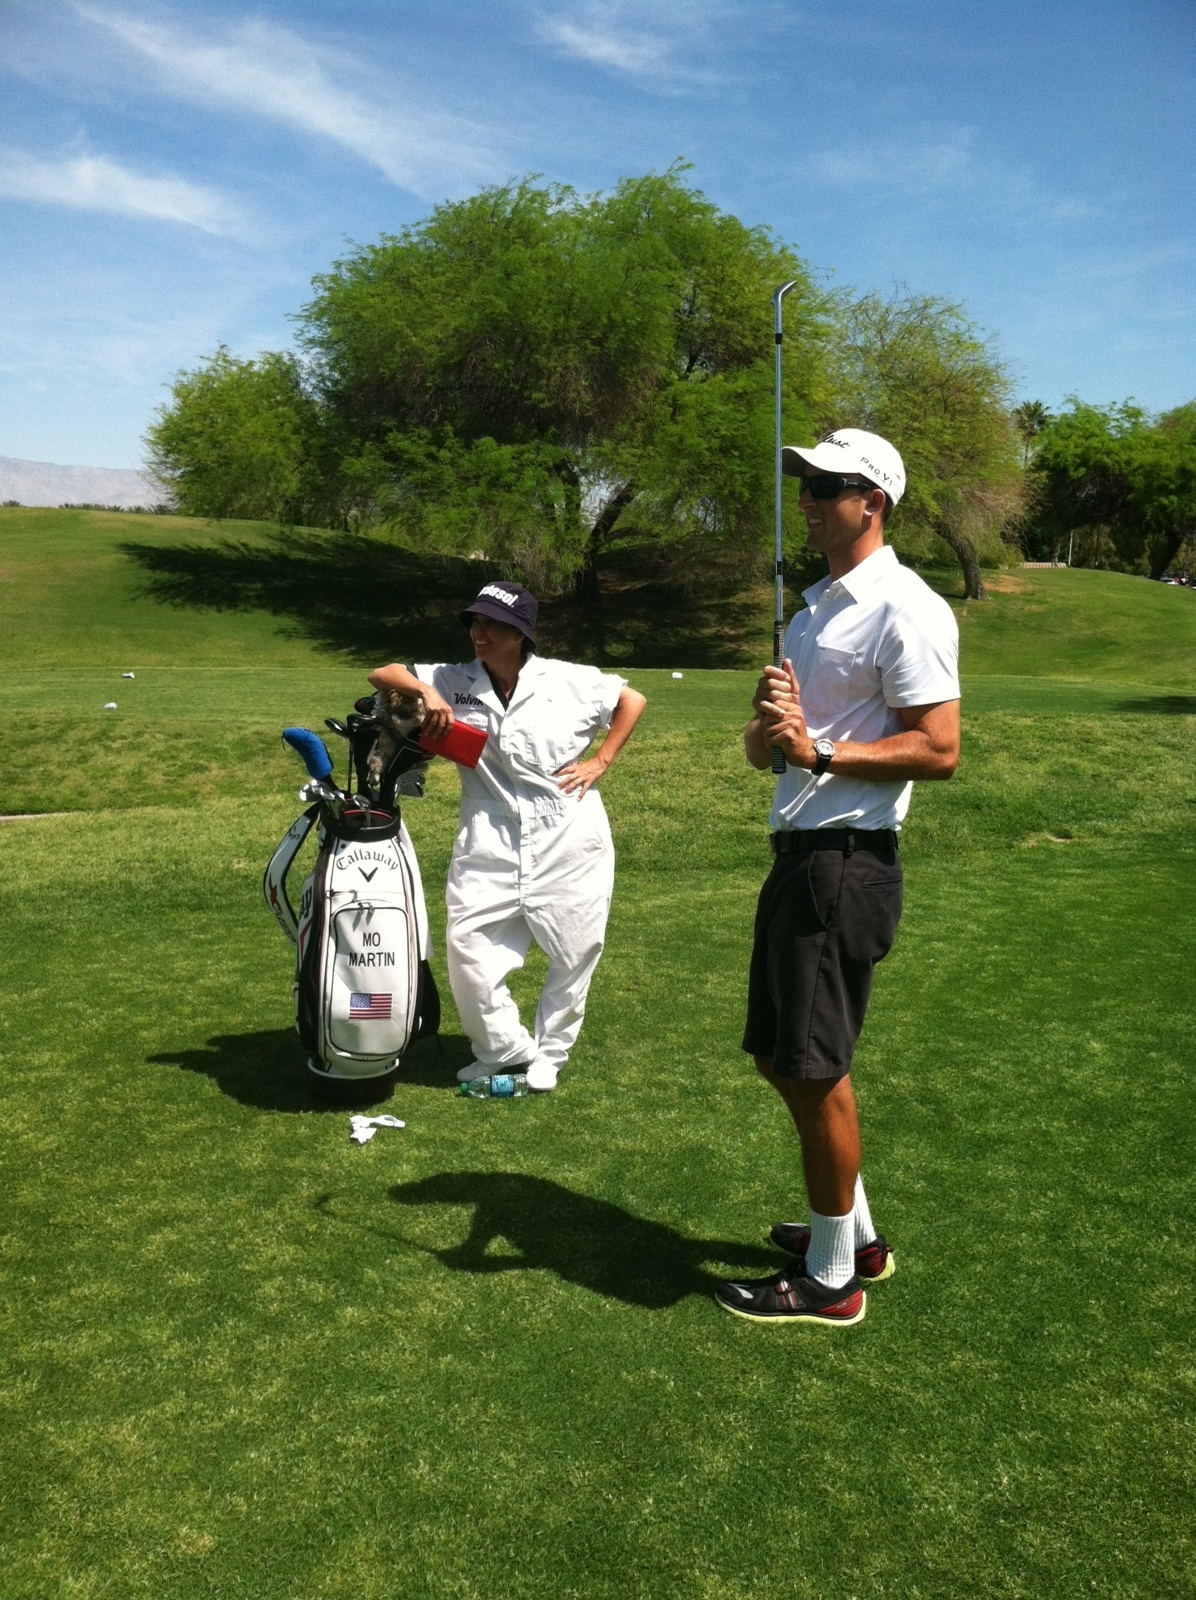 mo-as-kyles-caddie-at-kraft-april-2013